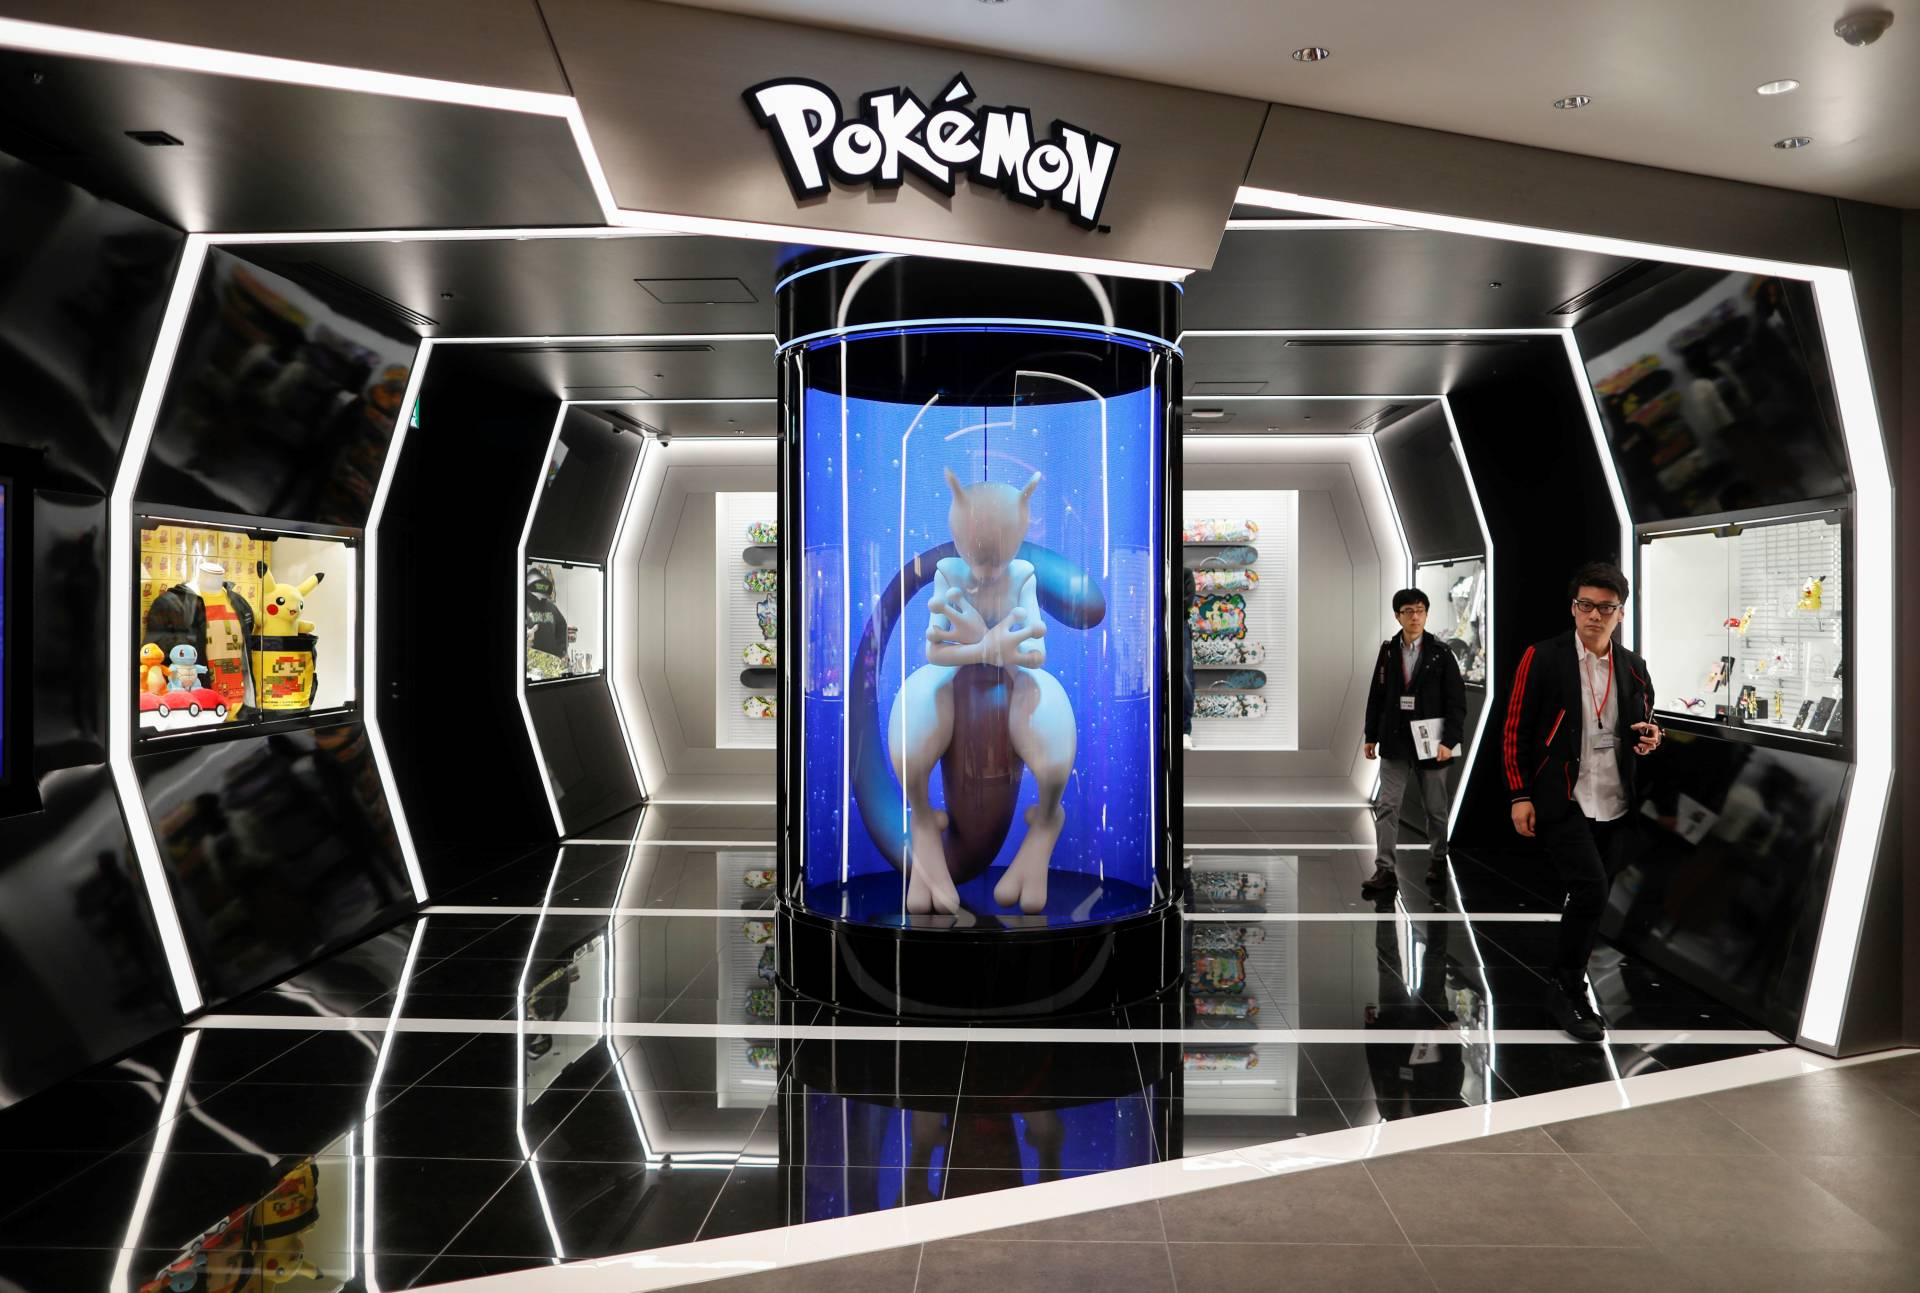 The Kyoto-based company, which already operates a store in New York, is building on the success of the Pokemon Centre retail chain, which will also have space on the 6th floor of the new Parco. — Reuters